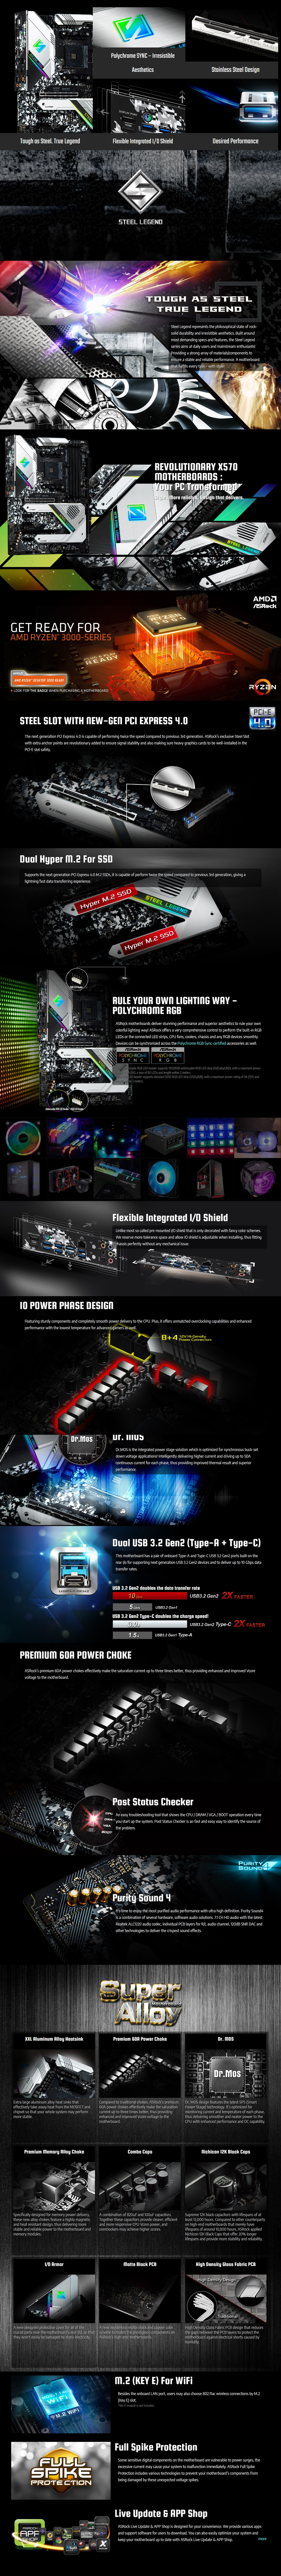 A large marketing image providing additional information about the product ASRock X570 Steel Legend AM4 ATX Desktop Motherboard - Additional alt info not provided